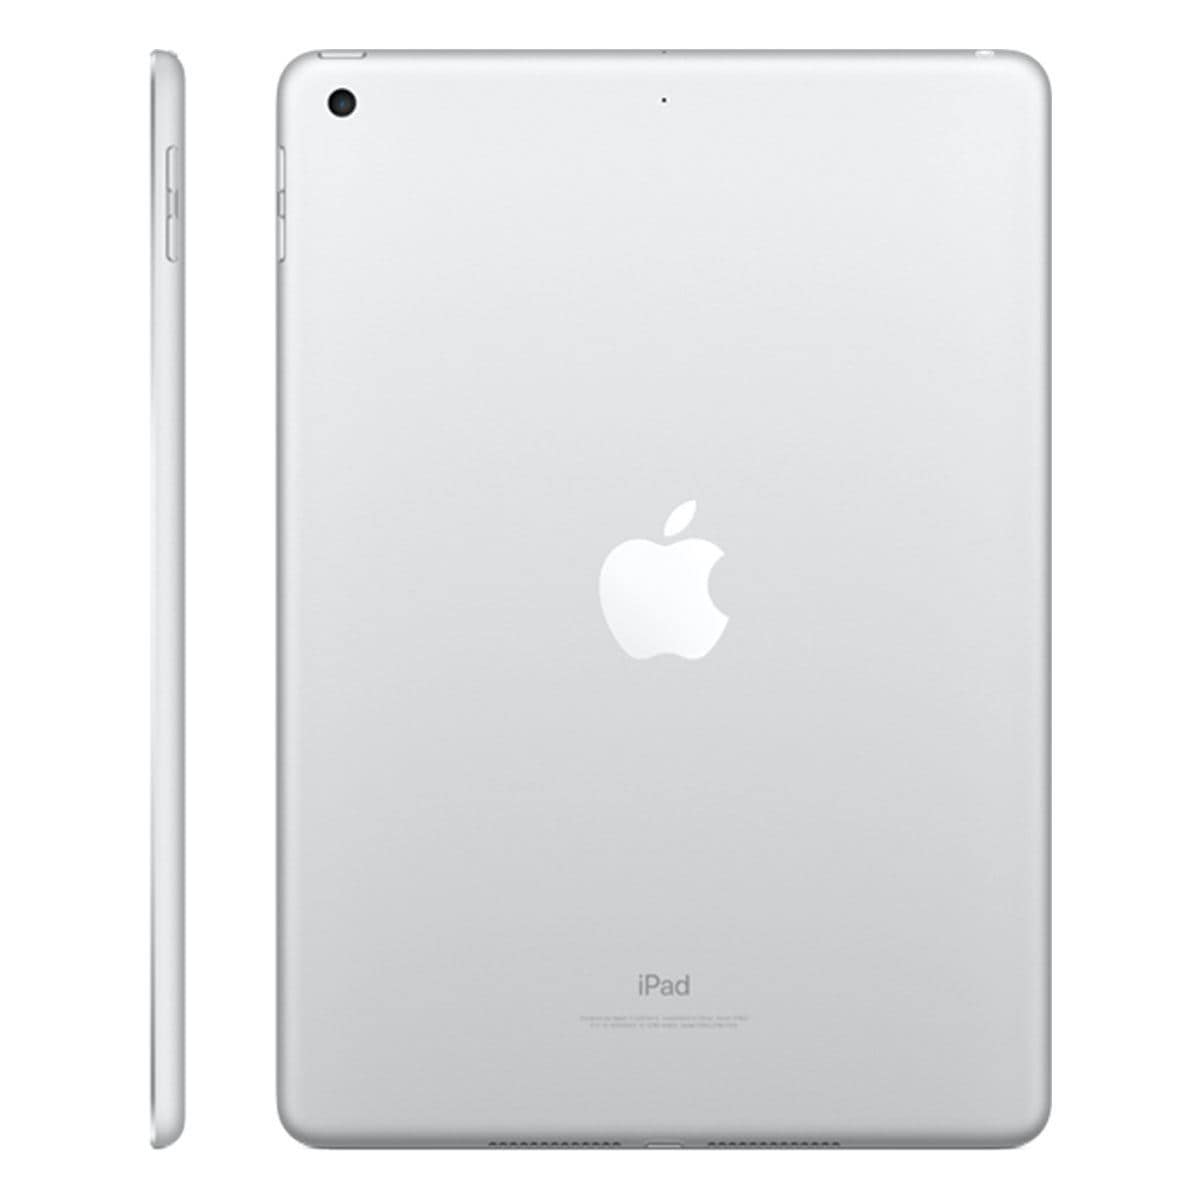 Ipad WI-FI 32GB Silver